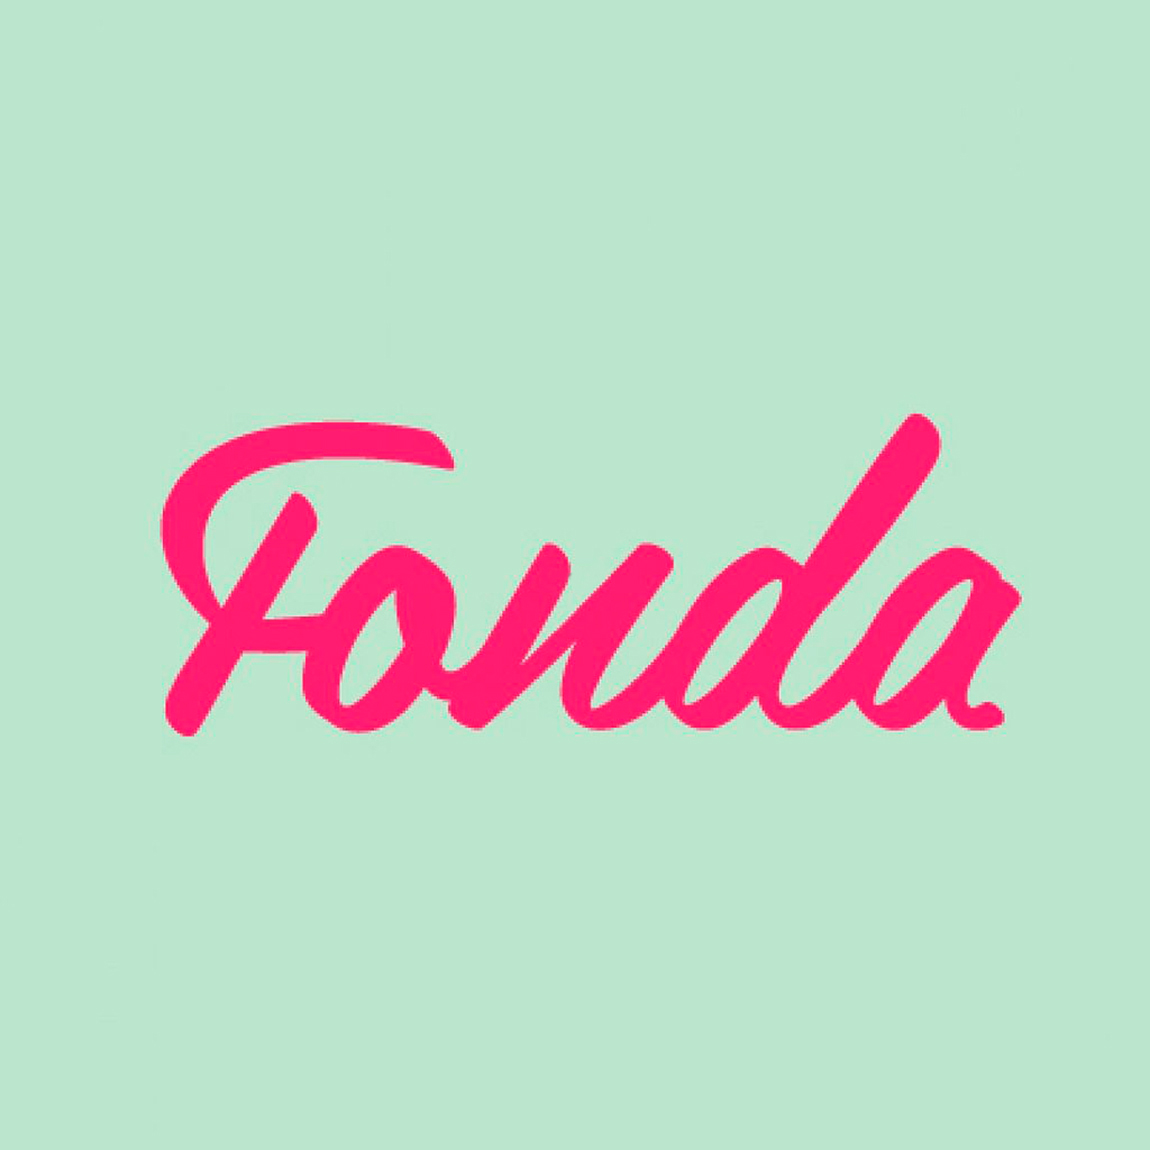 Fonda Mexican Brand Strategy gallery